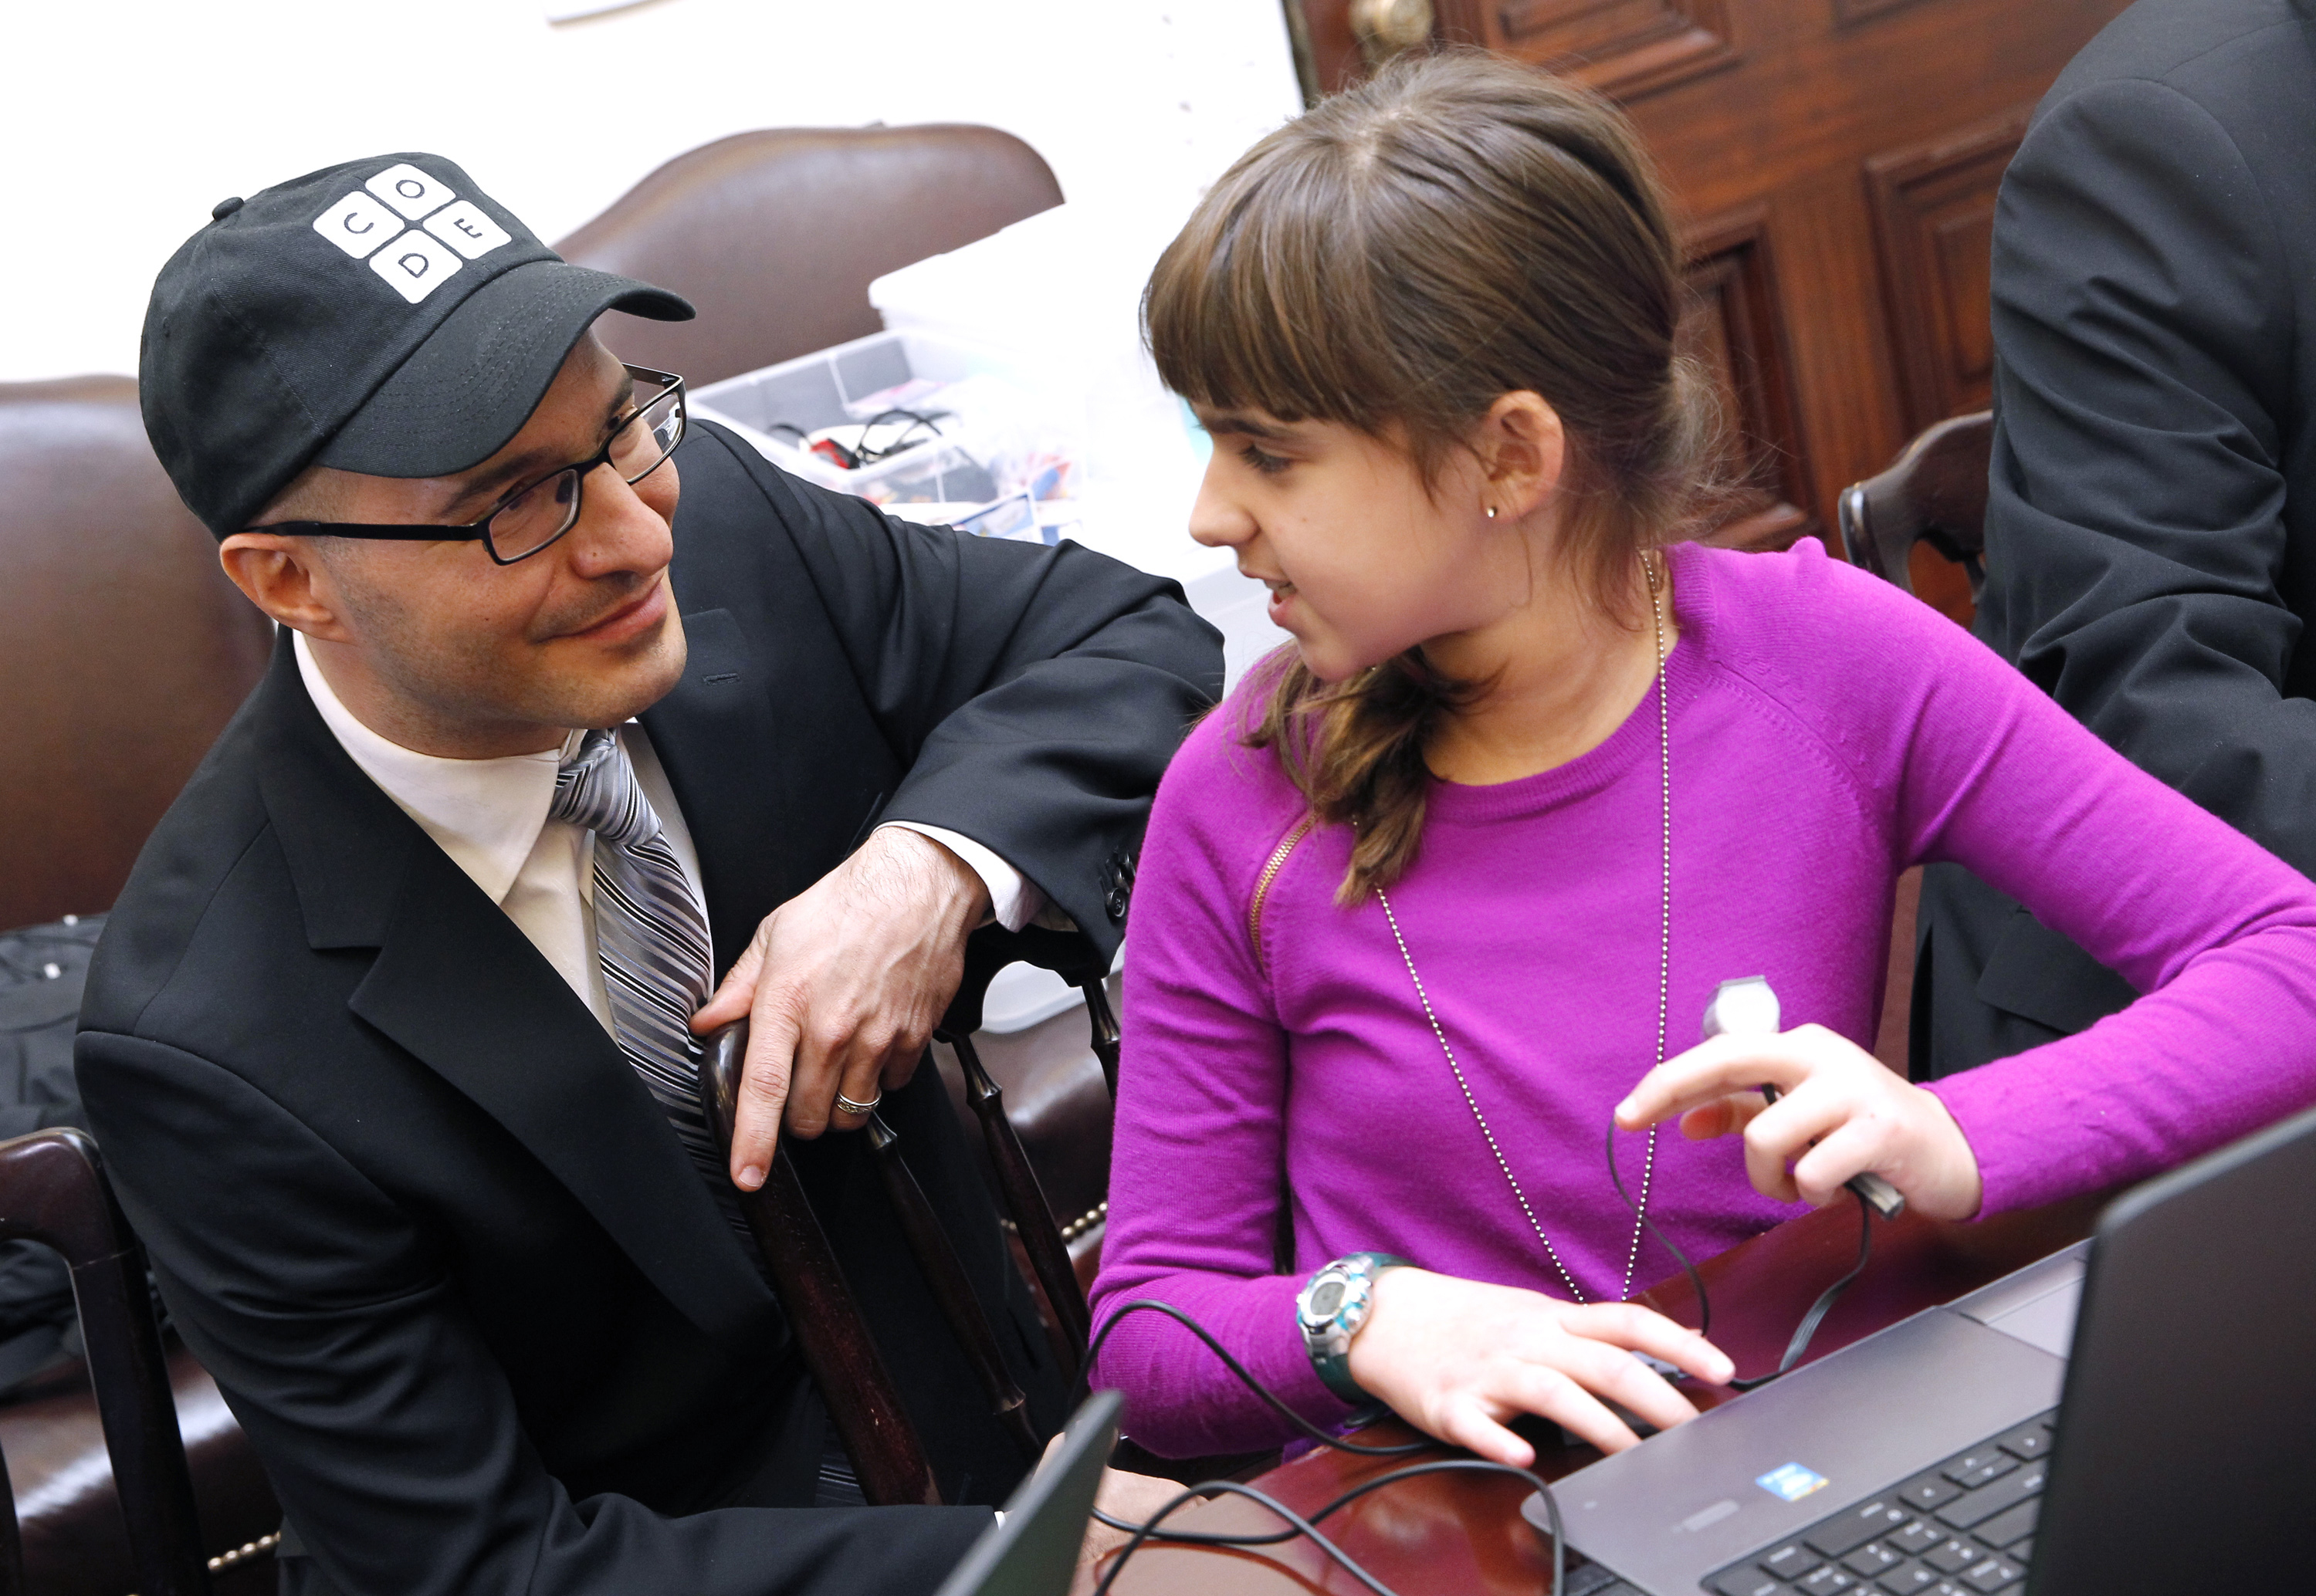 A middle school student shows off her work to Code.org Founder Hadi Partovi at the White House during a coding session in 2014.